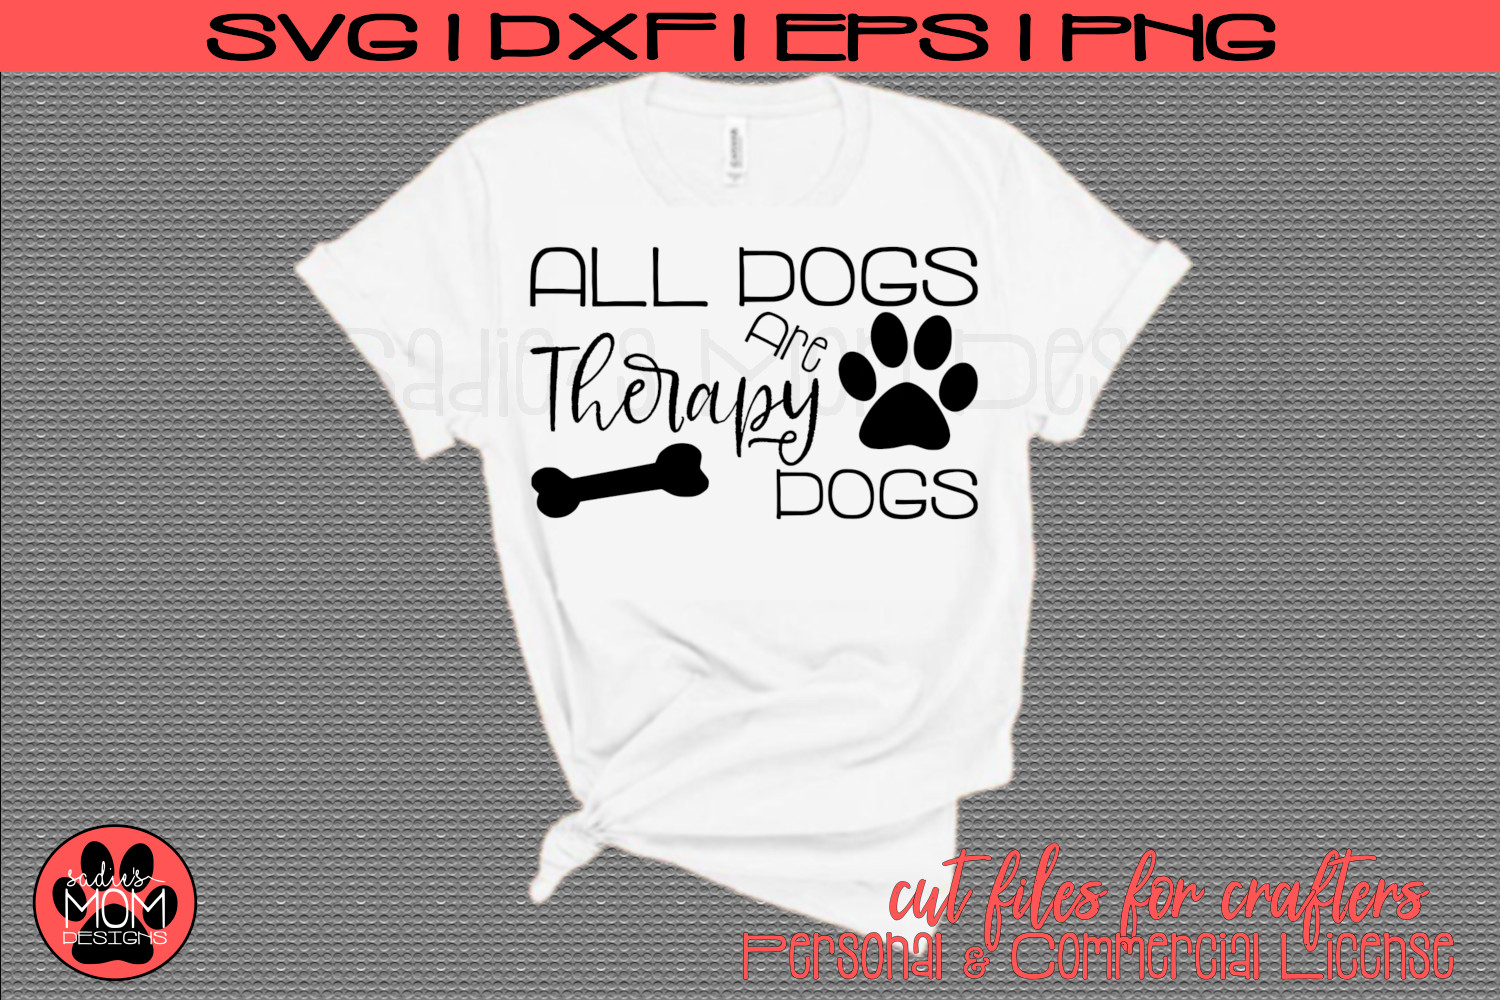 All Dogs are Therapy Dogs | Dog Lover SVG Cut File example image 1